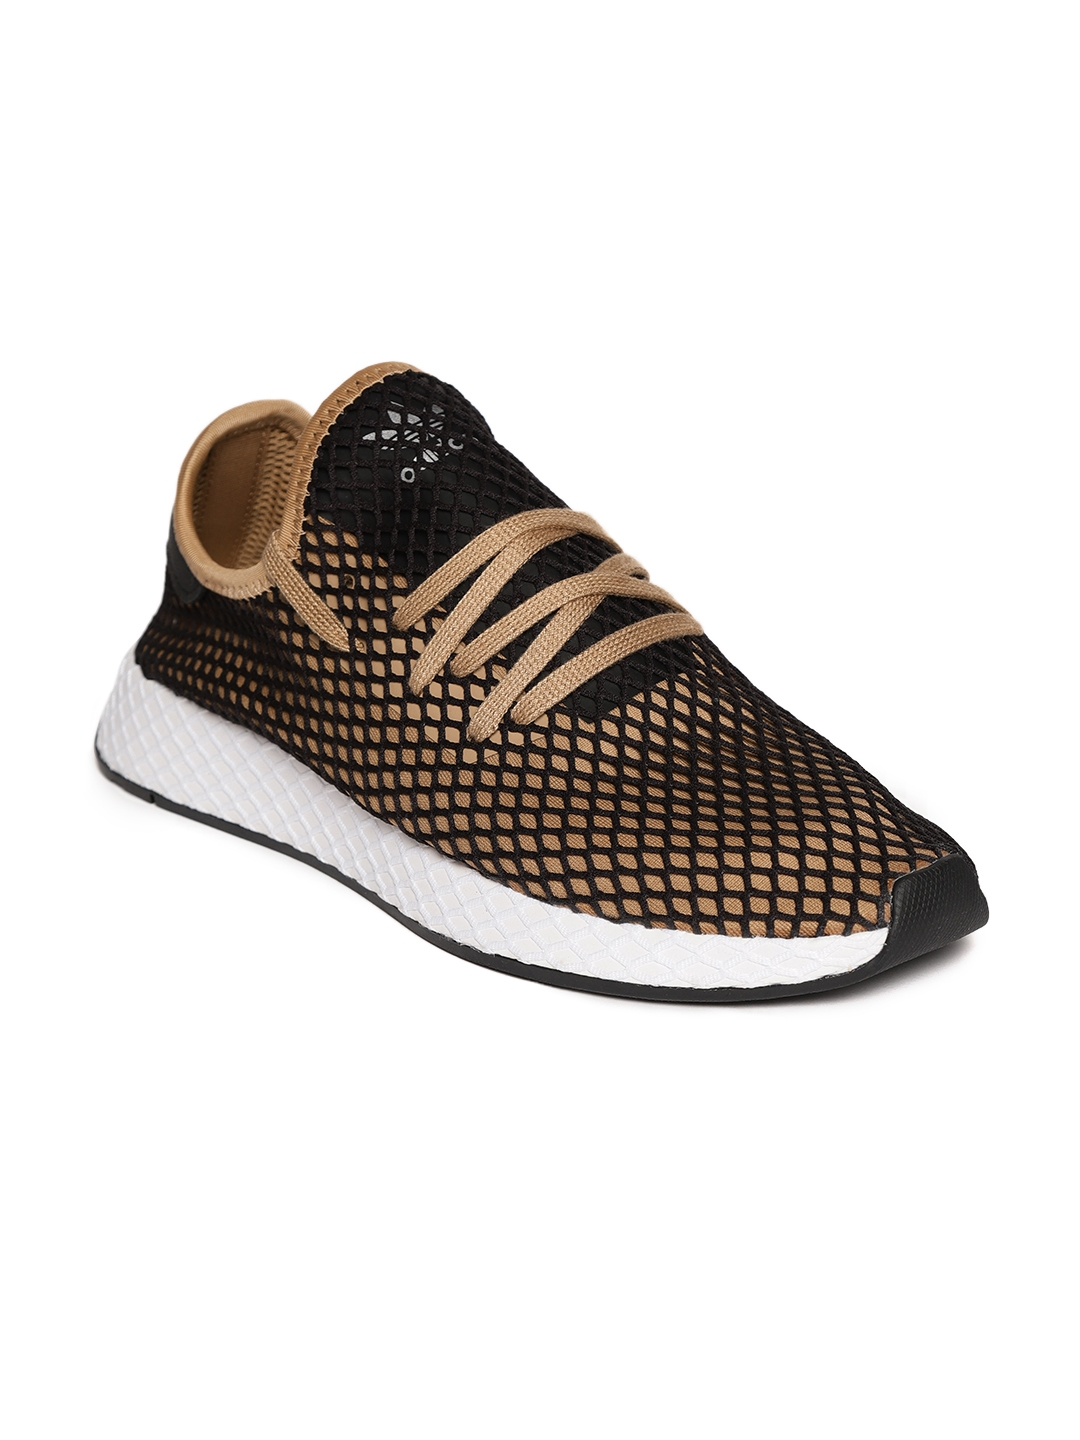 e6ef2cf849039 Buy ADIDAS Originals Men Black   Beige Deerupt Runner Sneakers ...